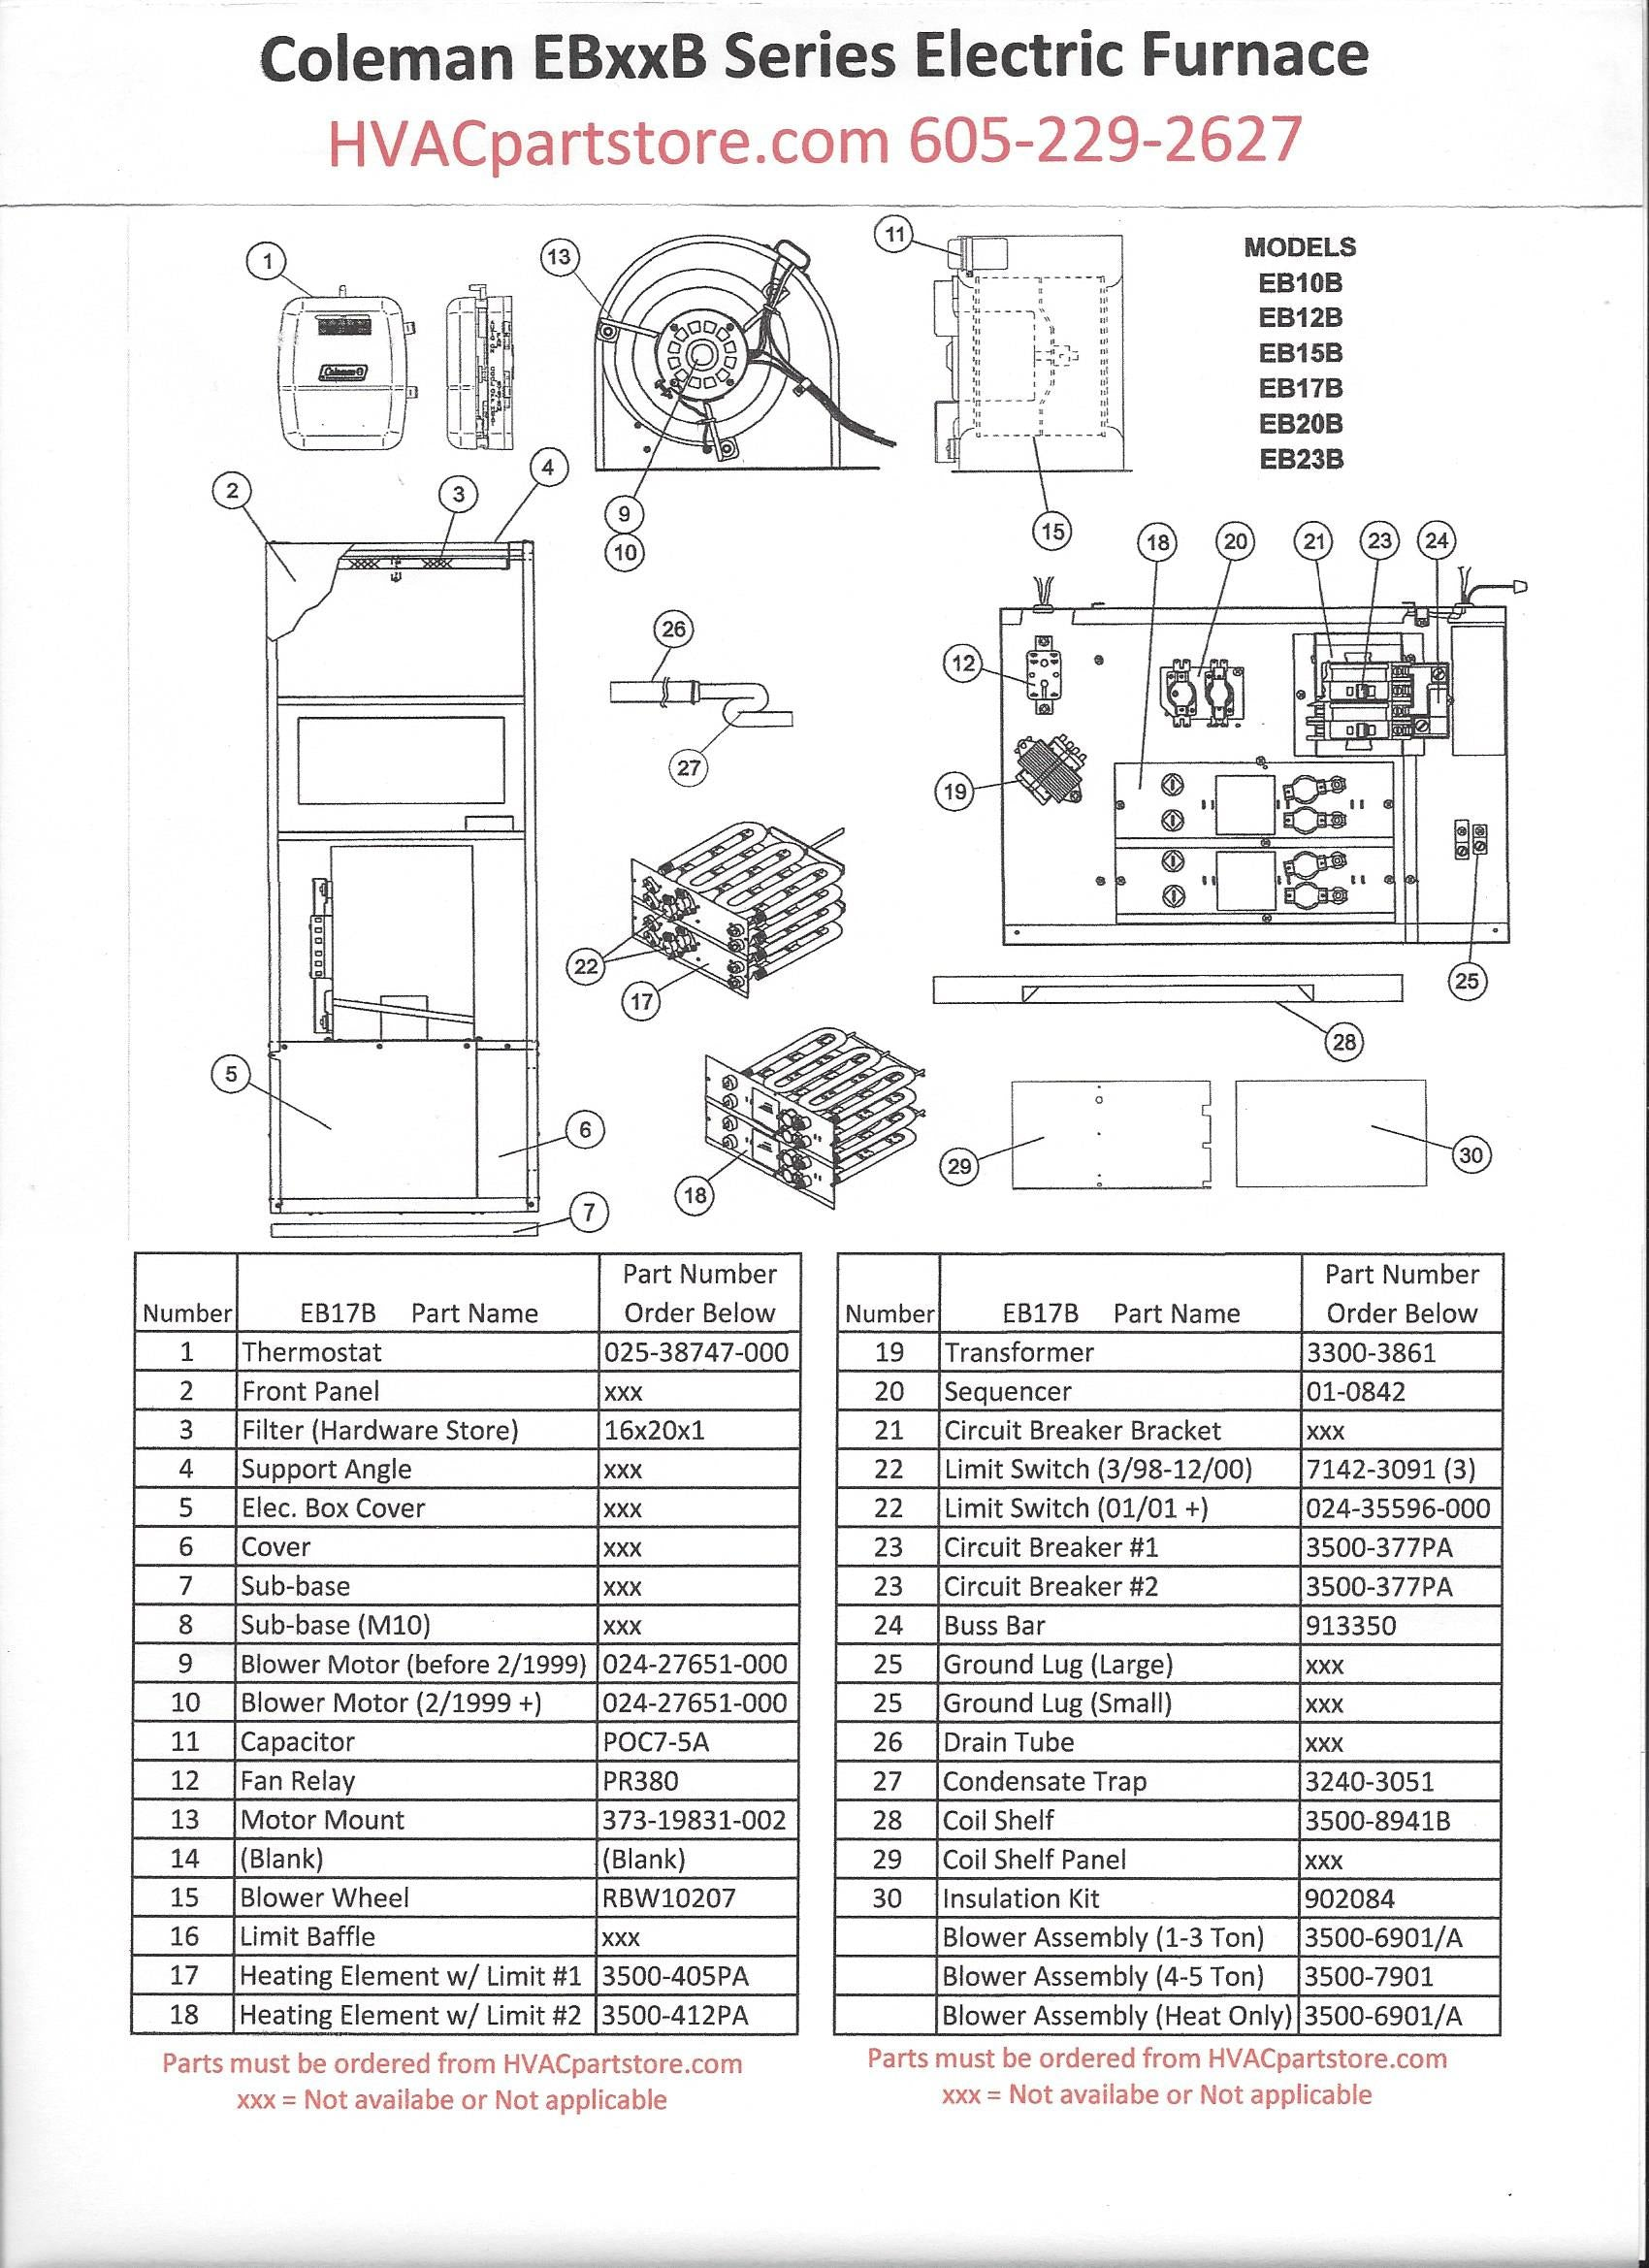 goodman a c wiring diagram with Eb17b Coleman Electric Furnace Parts on Goodman Furnace Wiring Diagram B1370738 besides 00001 also Rv Electrical Outlet besides Wiring Diagrams Goodman Air Handler Single Phase as well Techsupportcenter.